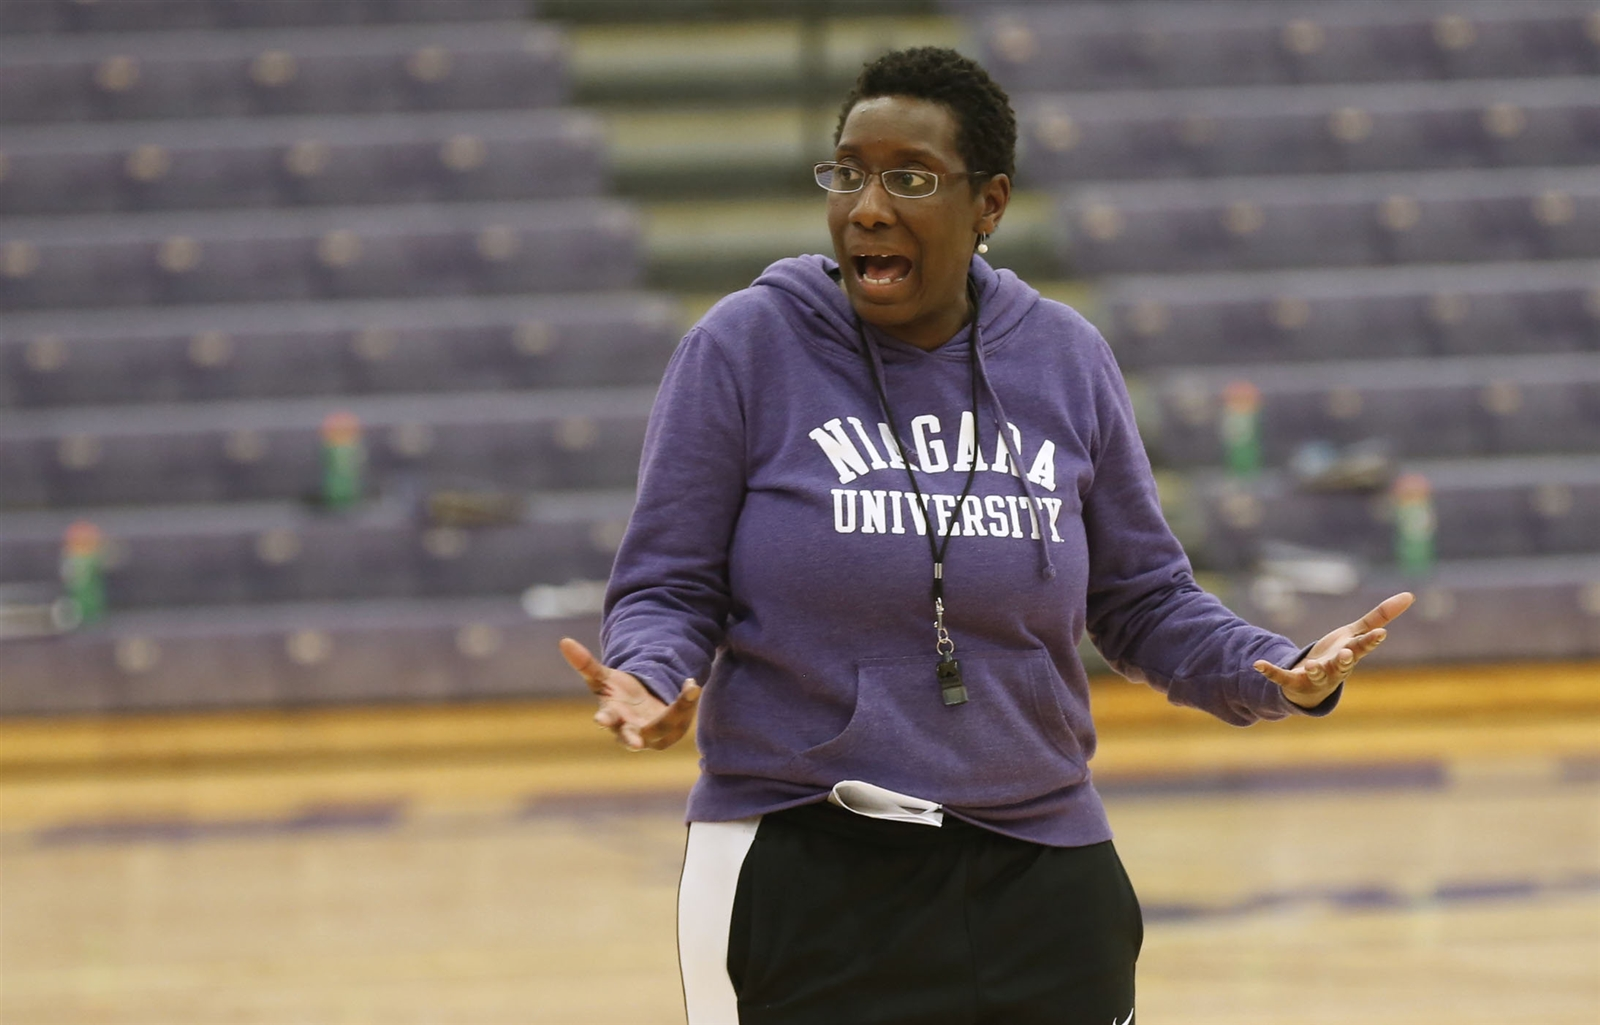 Niagara women's coach Jada Pierce